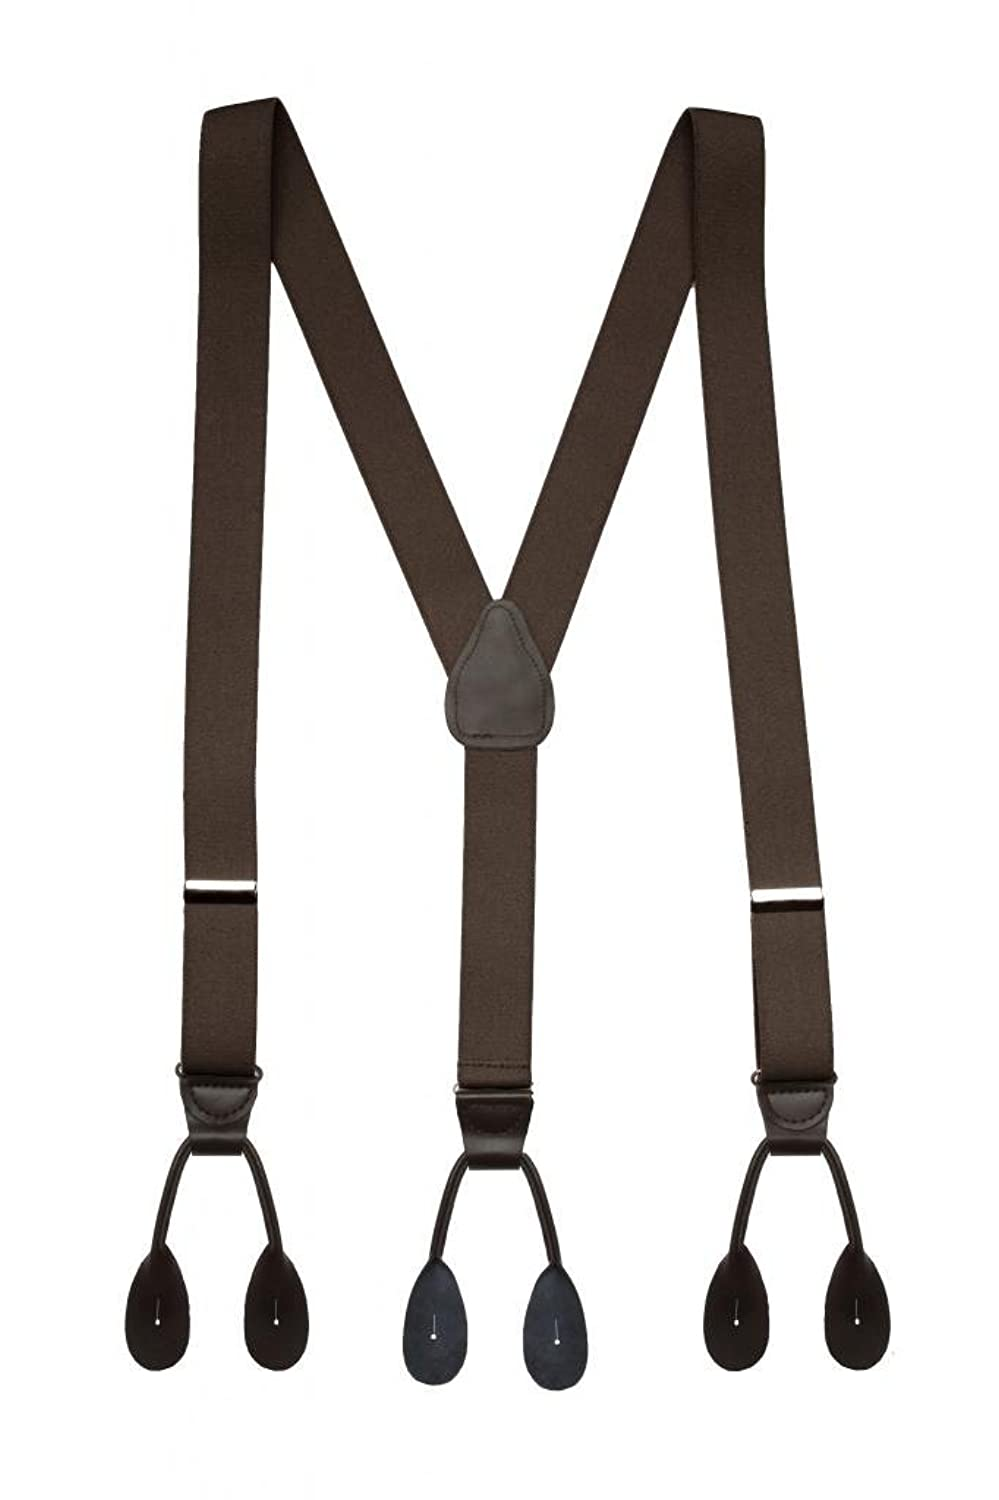 Men's Vintage Style Suspenders Suspenders Elastic Y-back Fully Adjustable Button end Suspender – Made in USA - With Genuine Leather Button Tabs and Crosspatch $23.99 AT vintagedancer.com